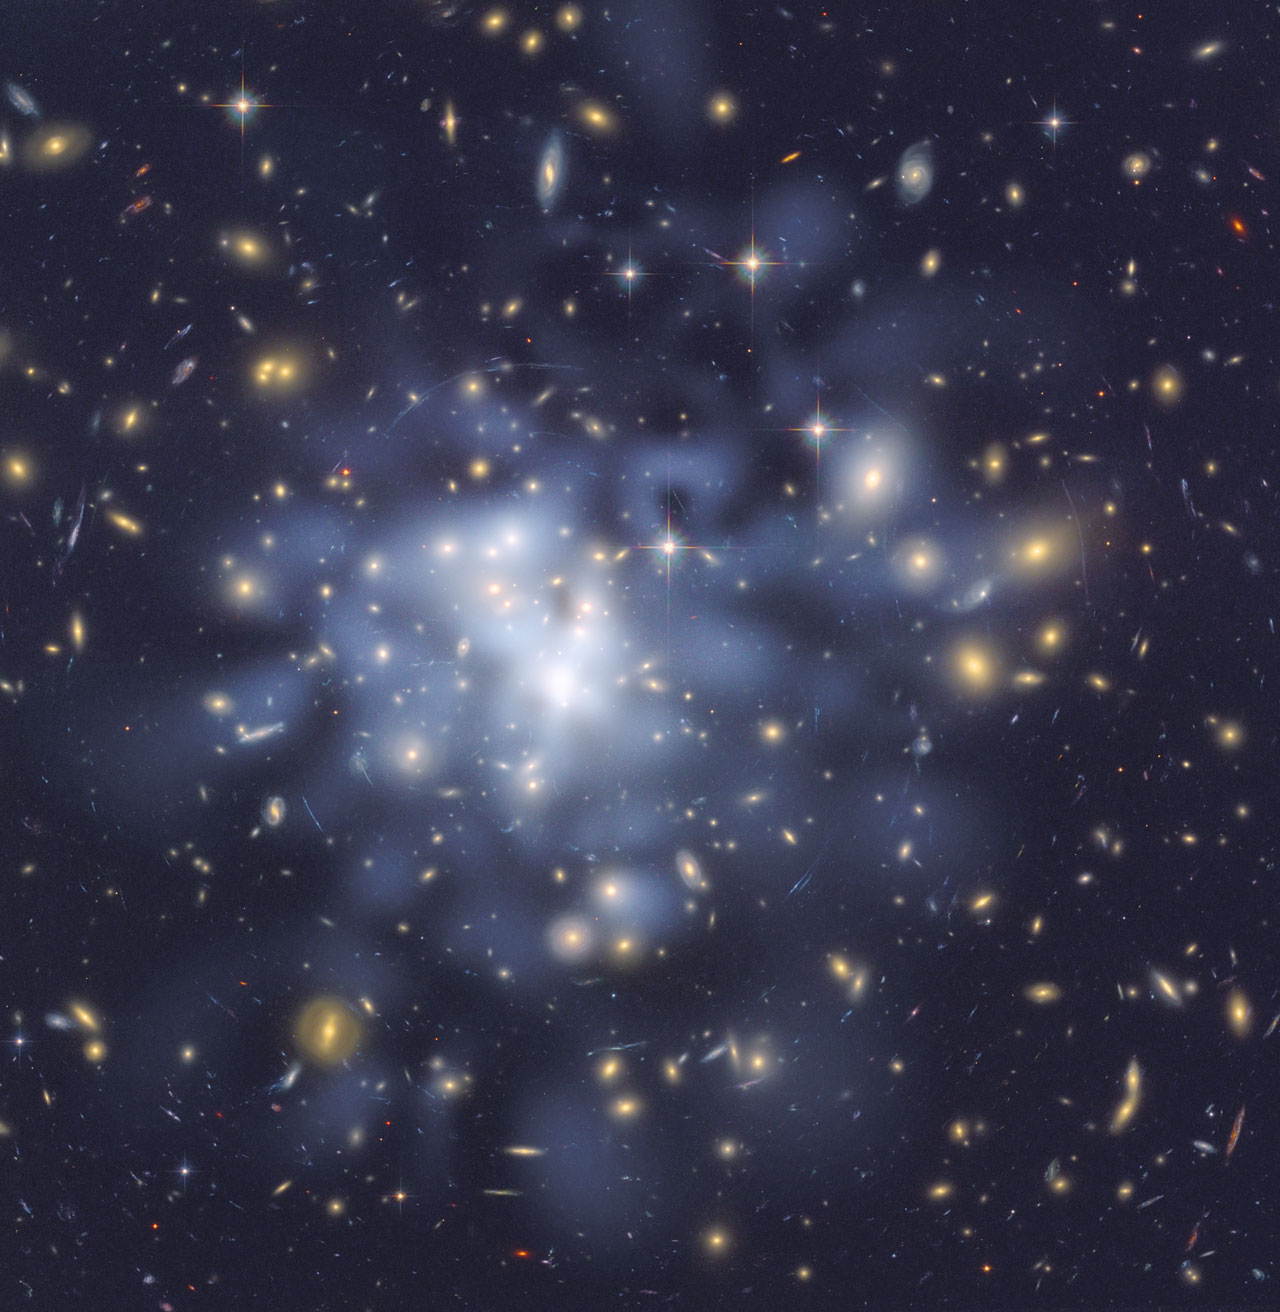 Hubble helps astronomers map dark matter in Abell 1689